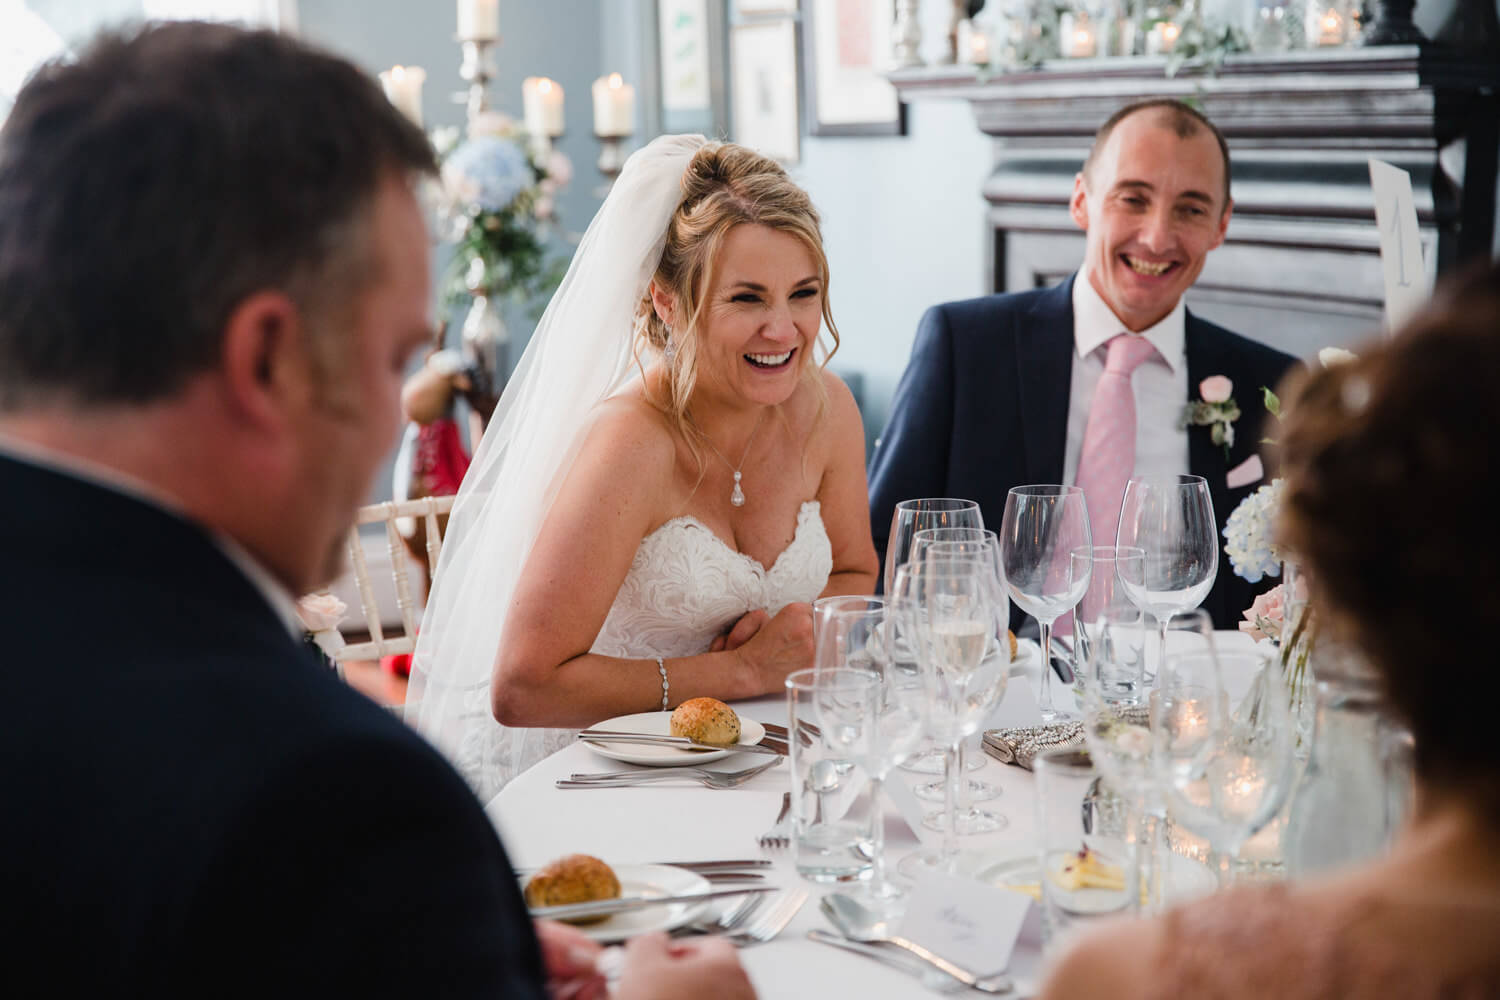 bride and groom laughing at jokes on table